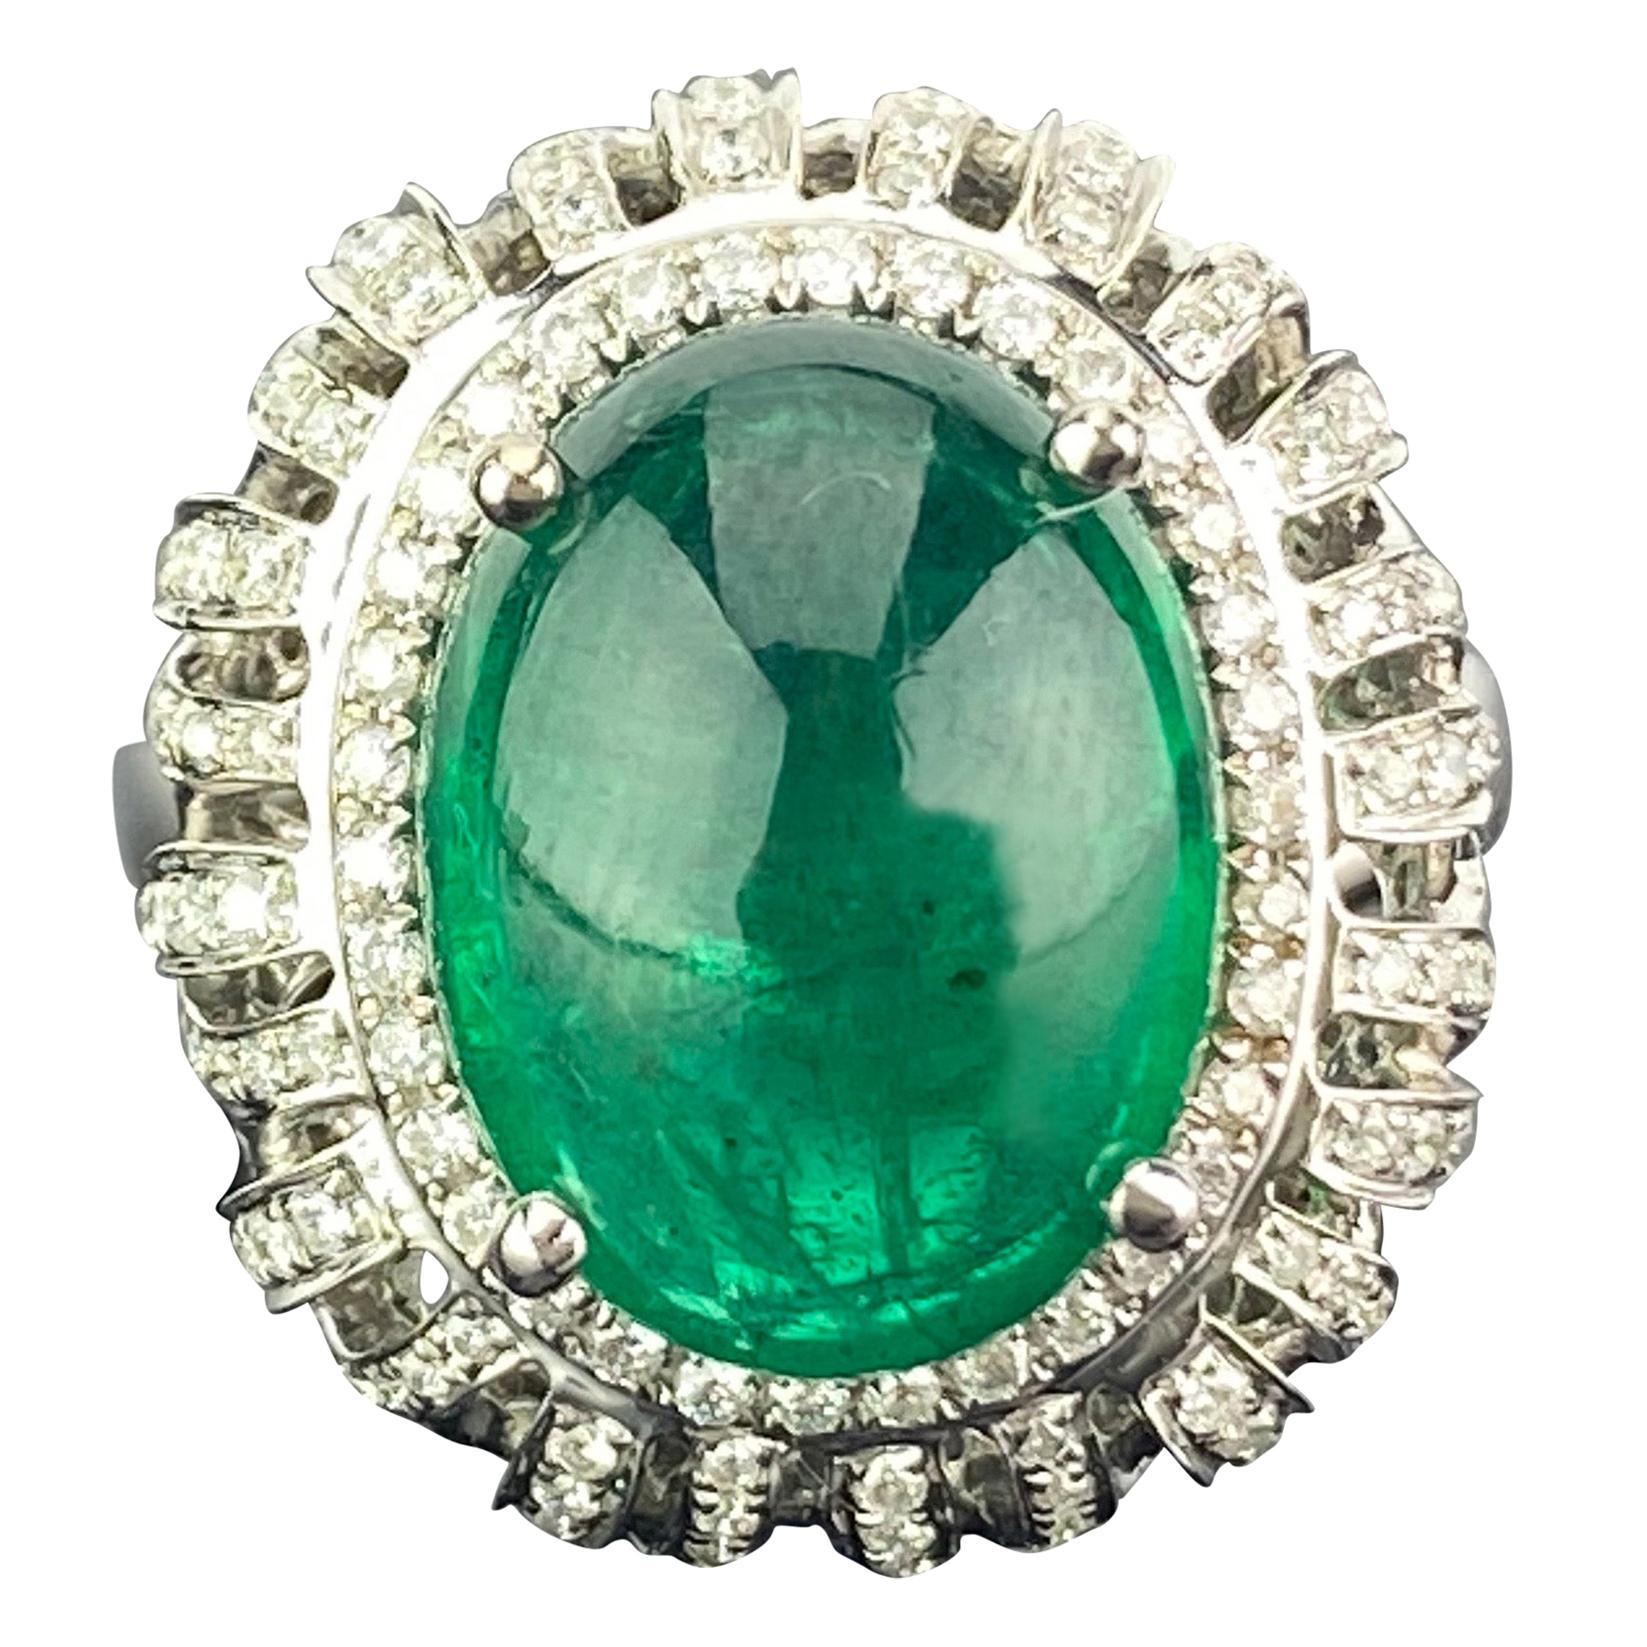 7.09 Carat Emerald Cabochon and Diamond Cocktail Ring